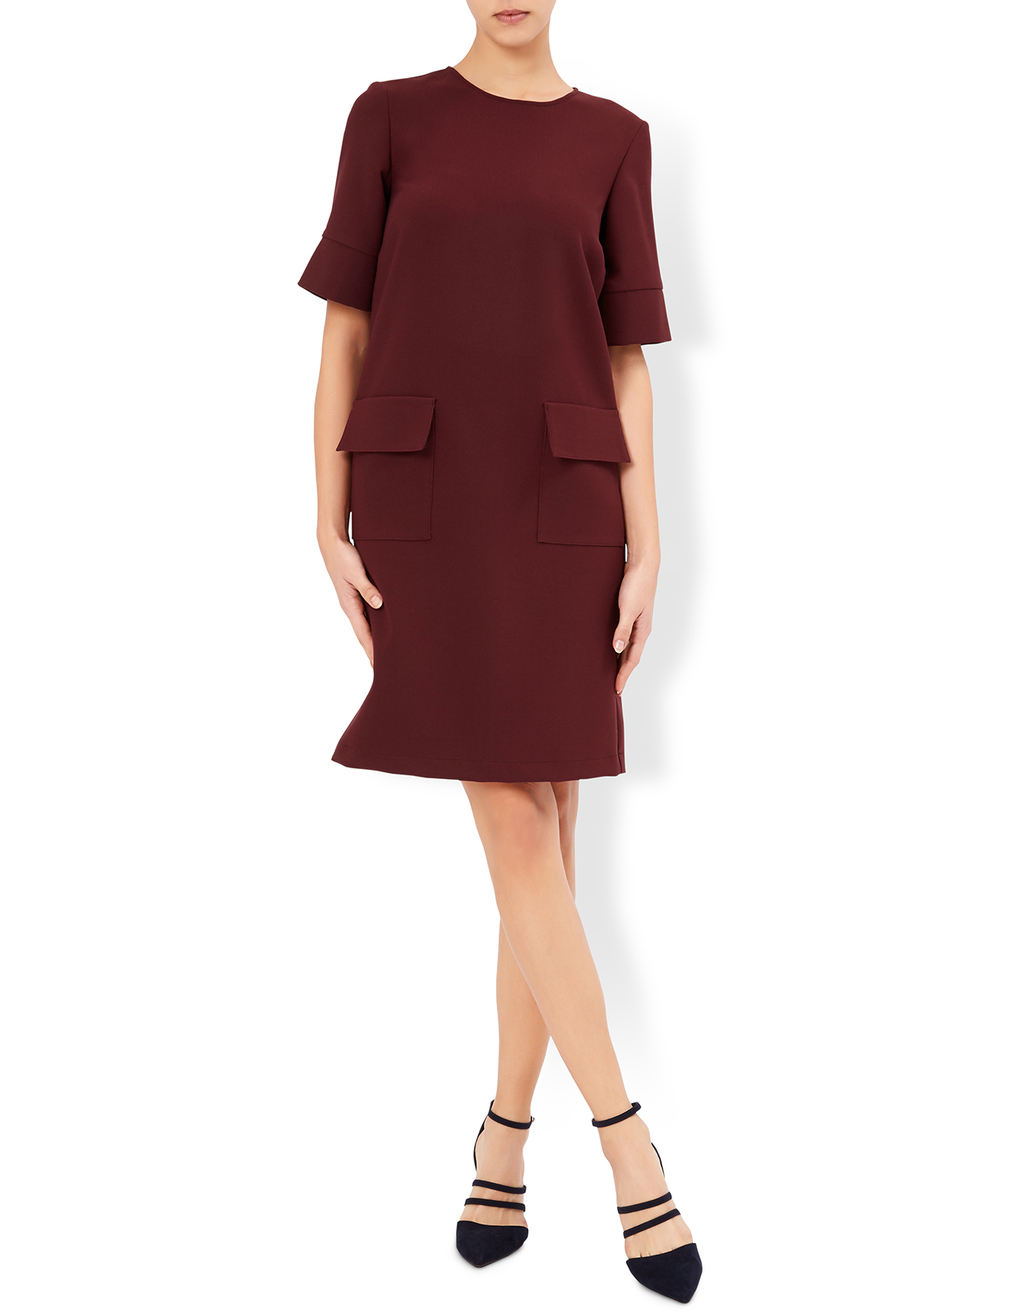 Eliza Burgundy Dress - style: shift; pattern: plain; predominant colour: burgundy; occasions: evening; length: on the knee; fit: straight cut; fibres: polyester/polyamide - stretch; neckline: crew; hip detail: subtle/flattering hip detail; sleeve length: short sleeve; sleeve style: standard; pattern type: fabric; pattern size: standard; texture group: woven light midweight; season: a/w 2016; wardrobe: event